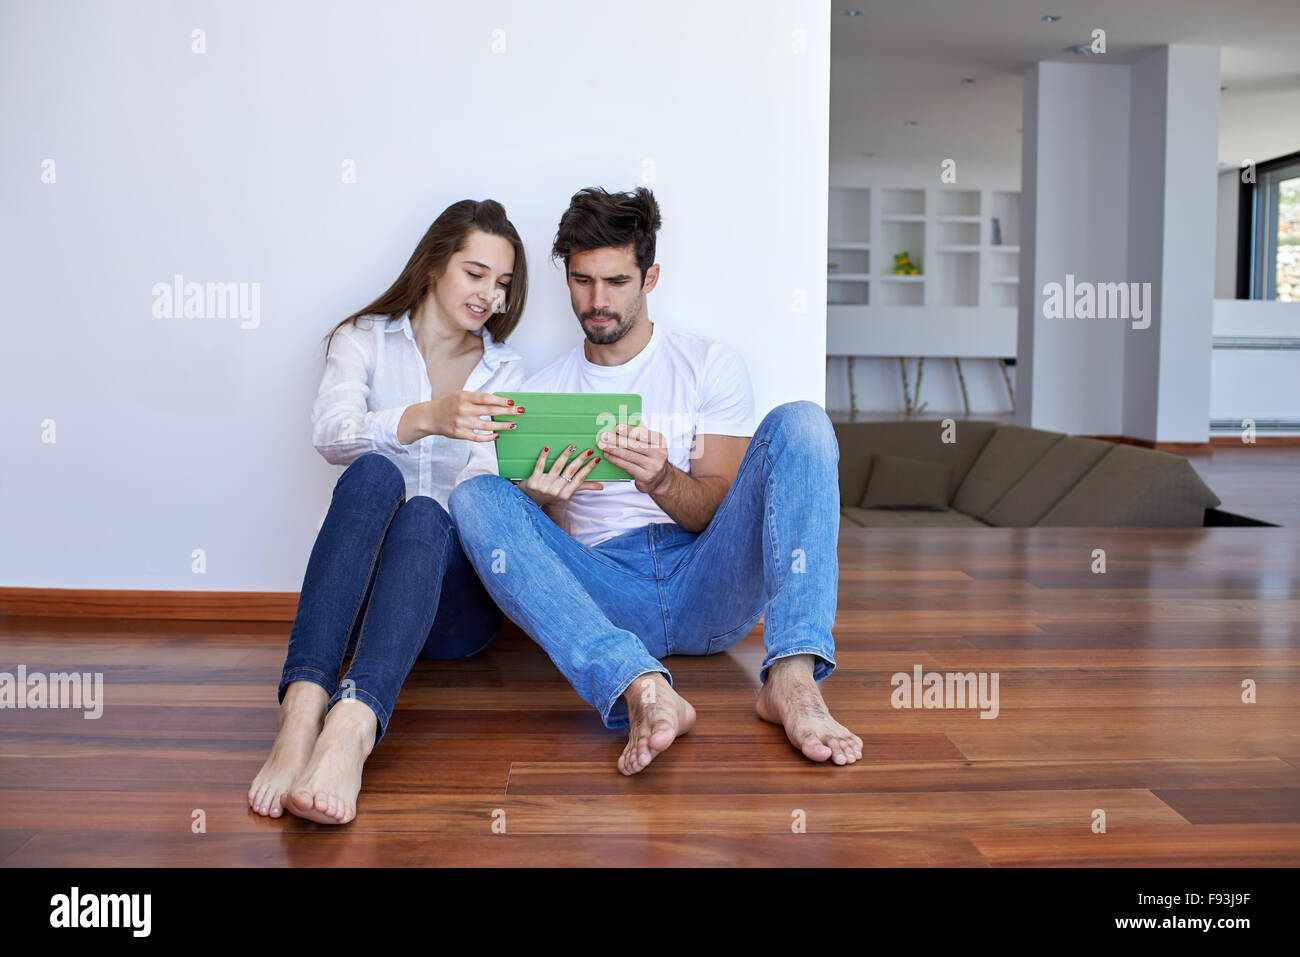 Romantic relaxed young couple at modern home using tablet computer stock photo royalty free - Young couple modern homes ...